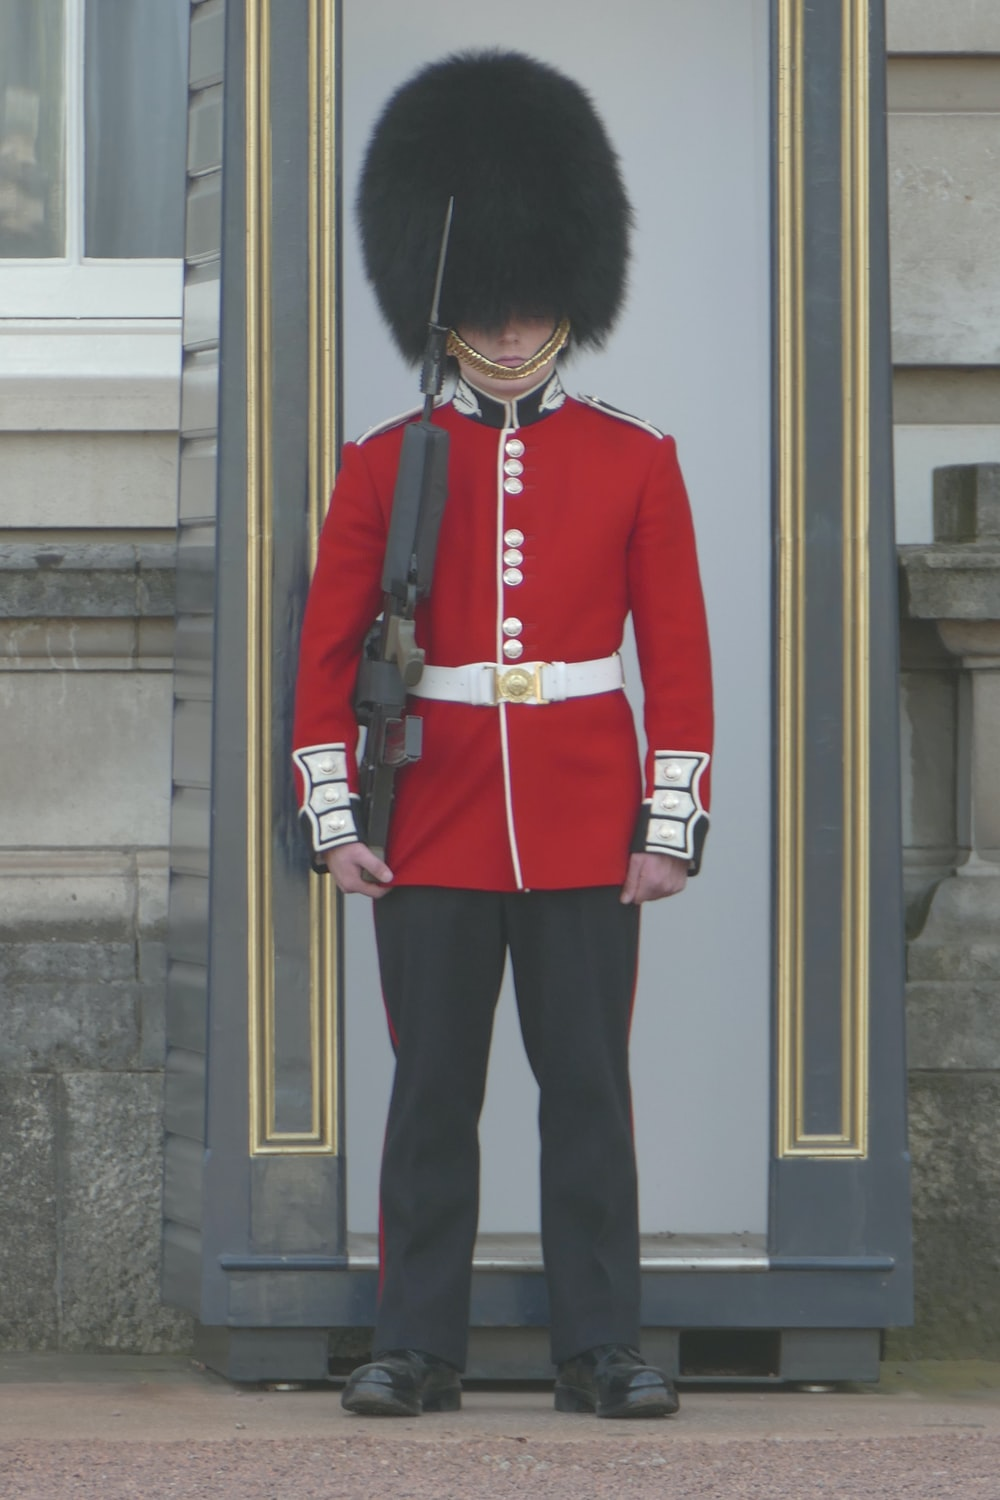 soldier in red suit